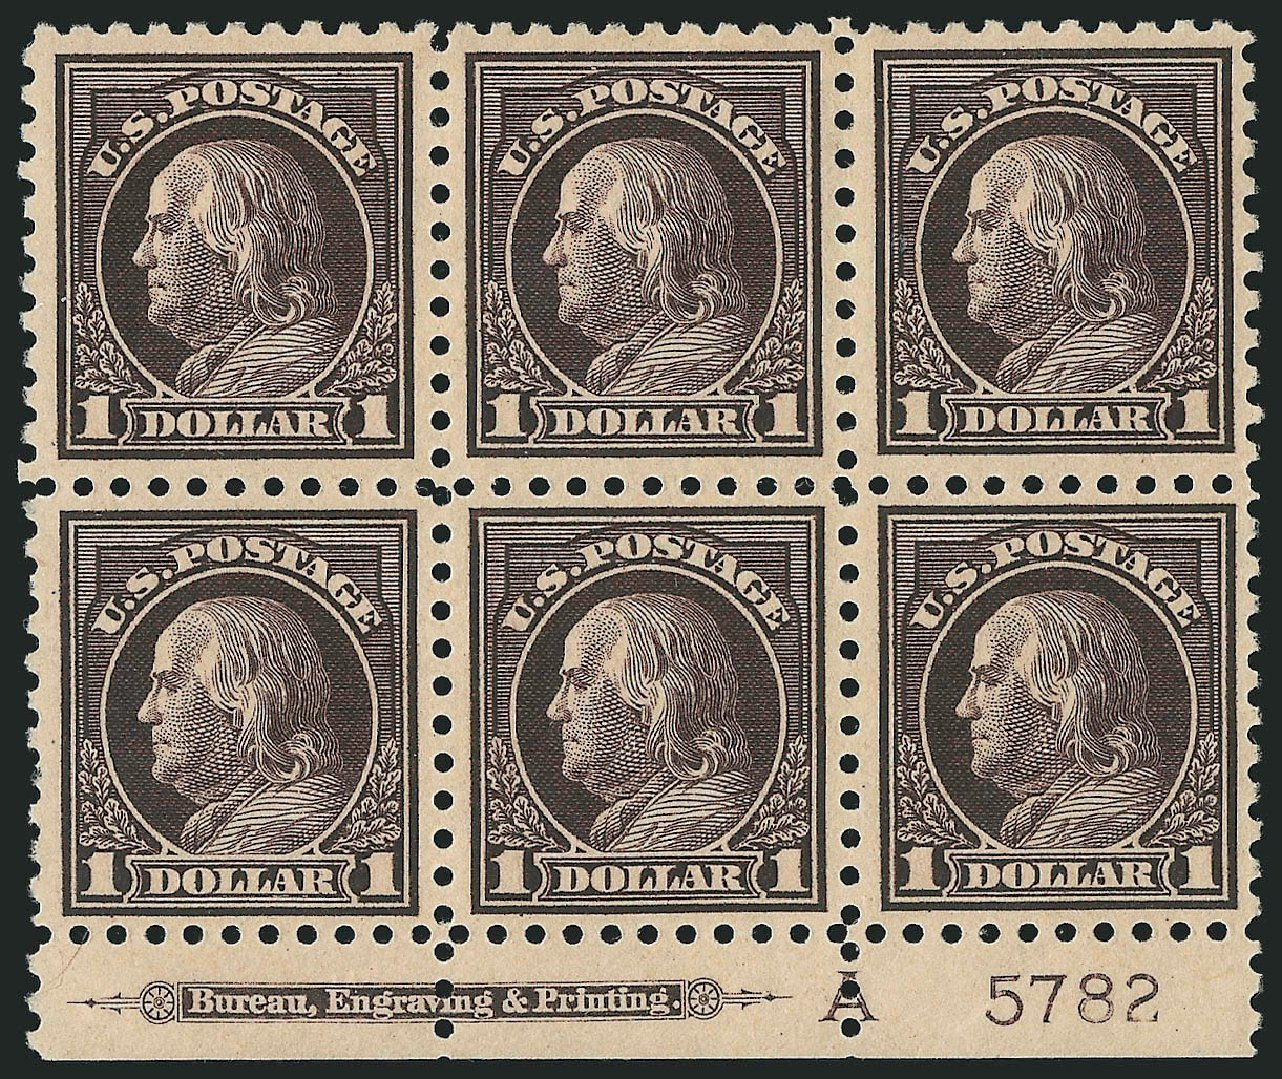 US Stamps Price Scott Catalog 478: US$1.00 1916 Franklin Perf 10. Robert Siegel Auction Galleries, Apr 2015, Sale 1096, Lot 730